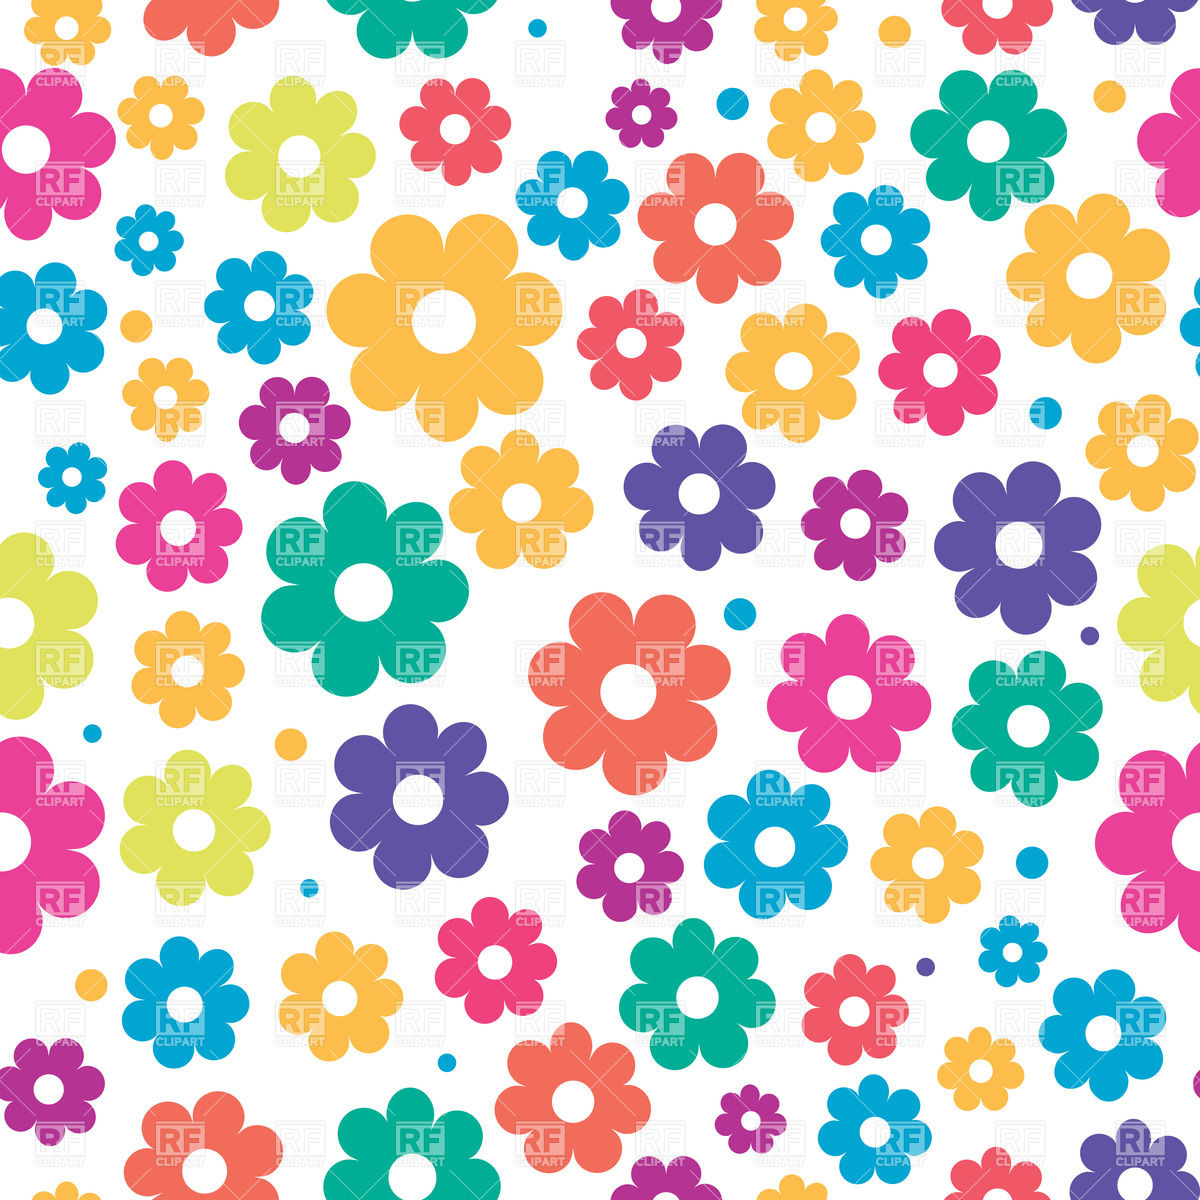 Free cliparts download clip. Background clipart floral